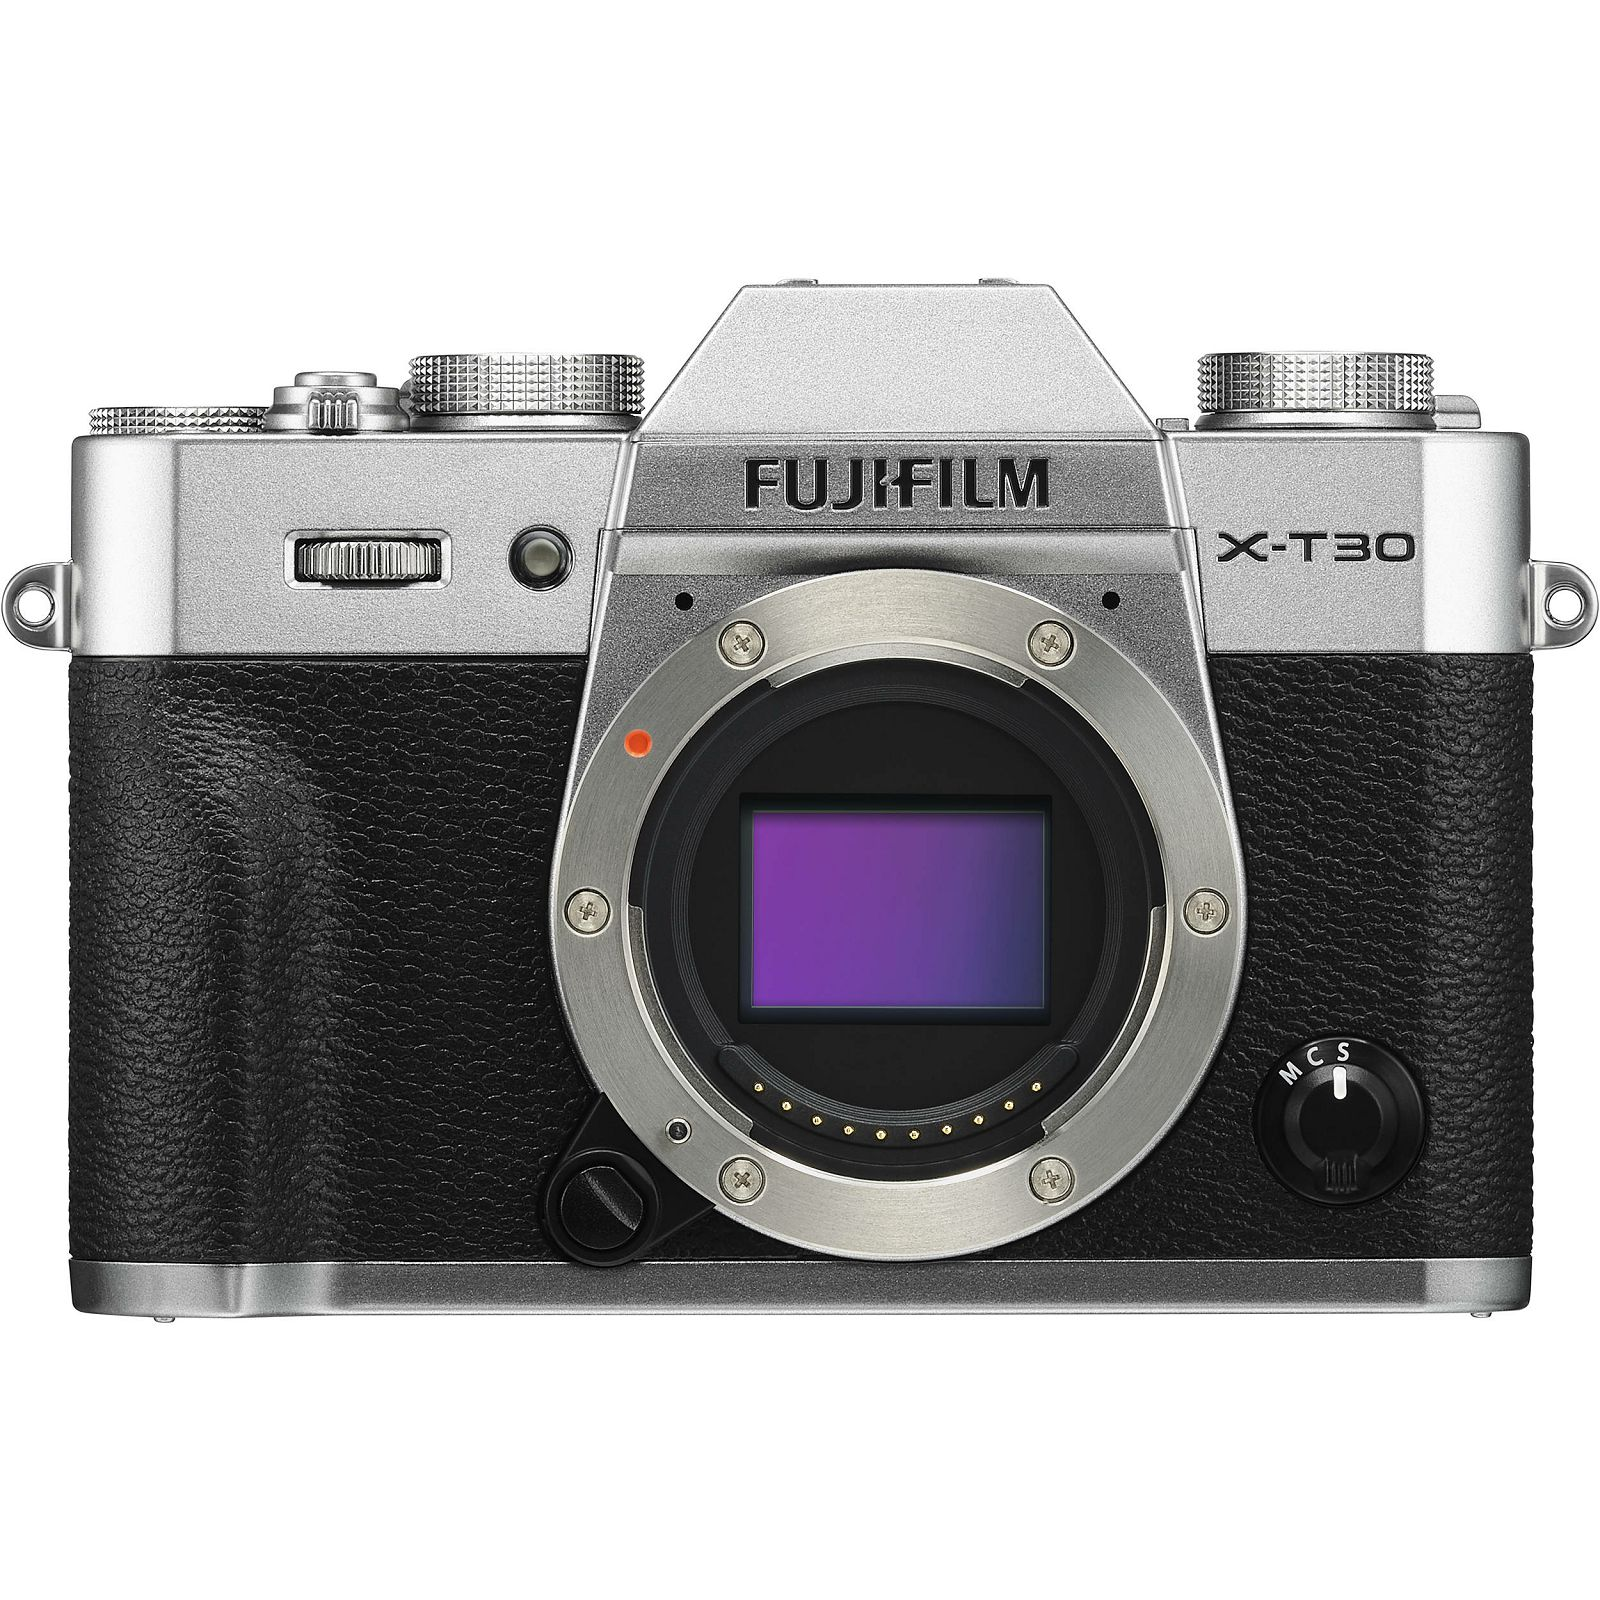 Fujifilm X-T30 Body Silver srebreni Digitalni fotoaparat Mirrorless camera Fuji Finepix (16620216)